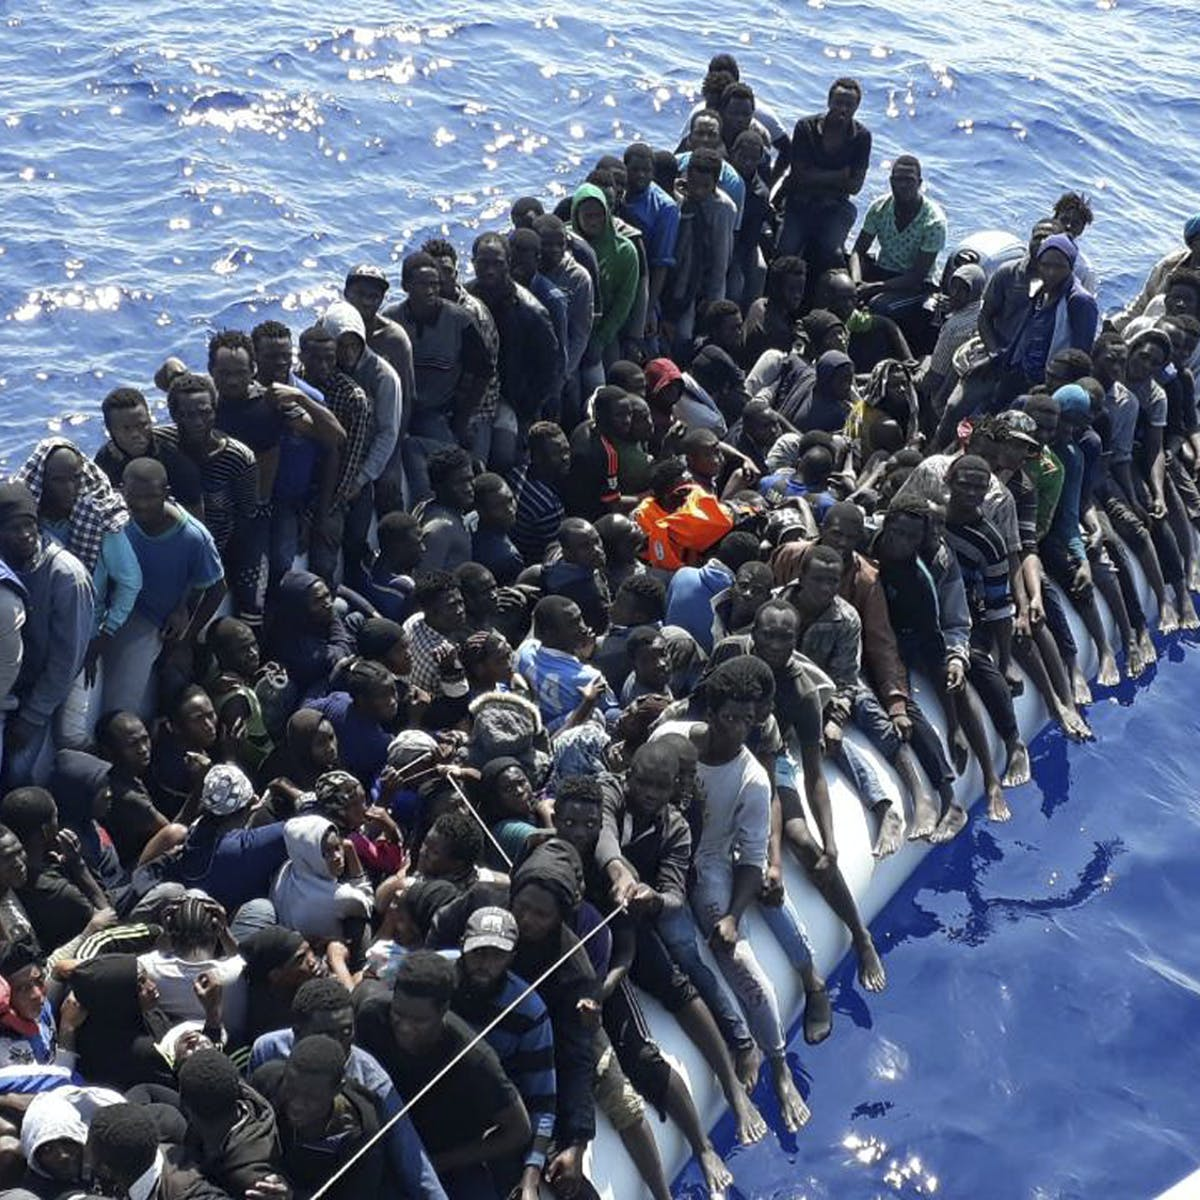 72 Africans Die Of 'Extreme' Abuse Every Month Crossing Into Europe - UN